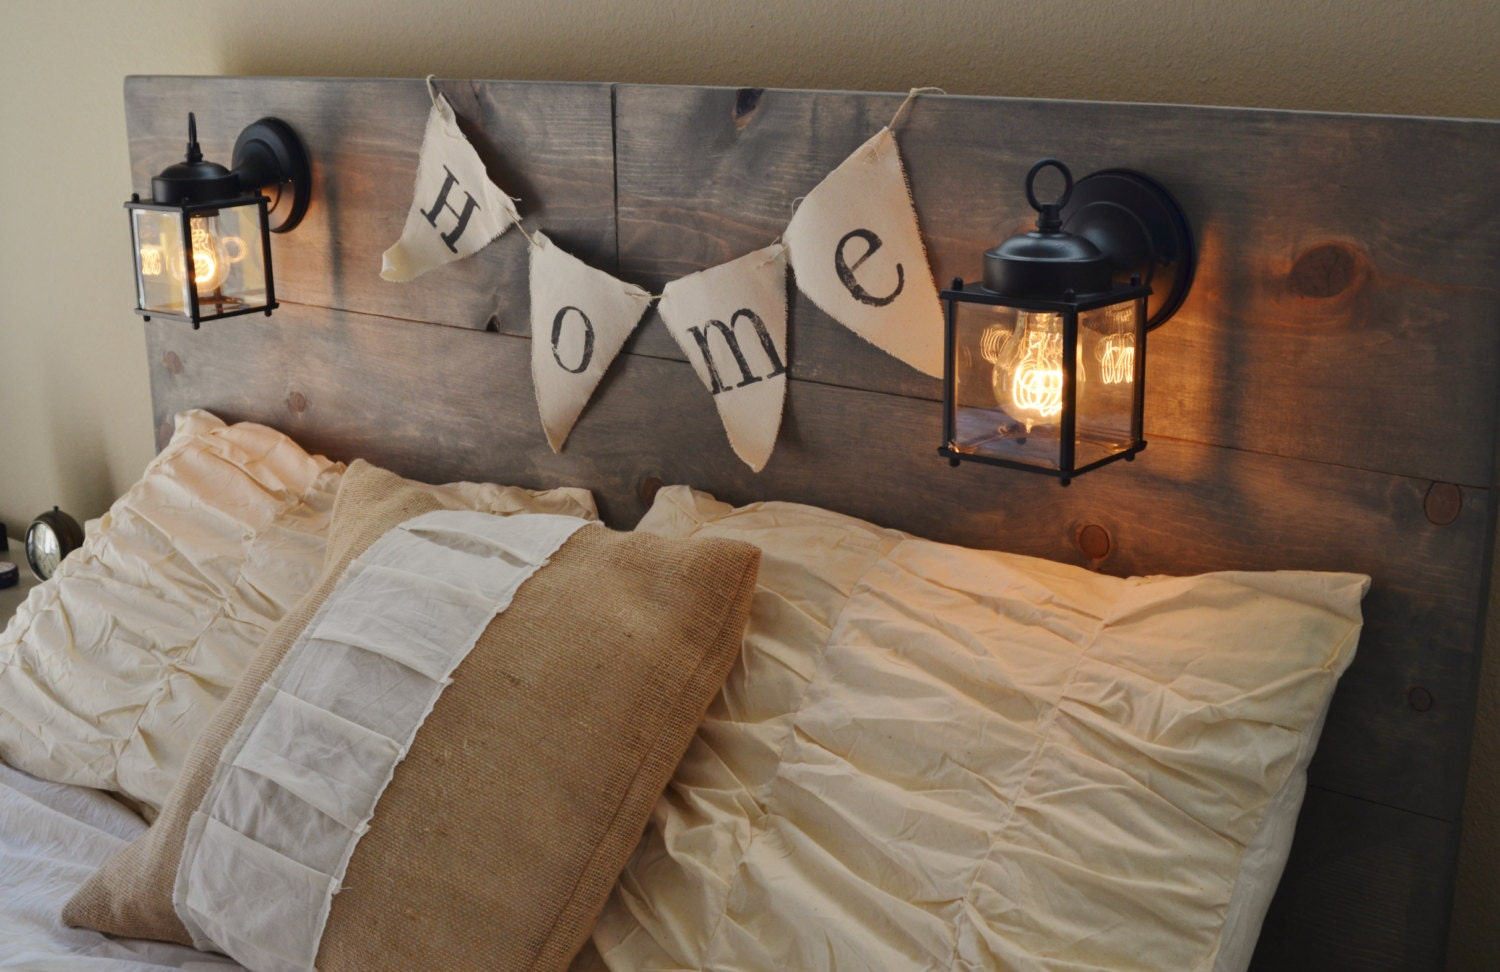 Rustic bed headboard - Wood Rustic Headboard With Black Built In Lighting Cordoba